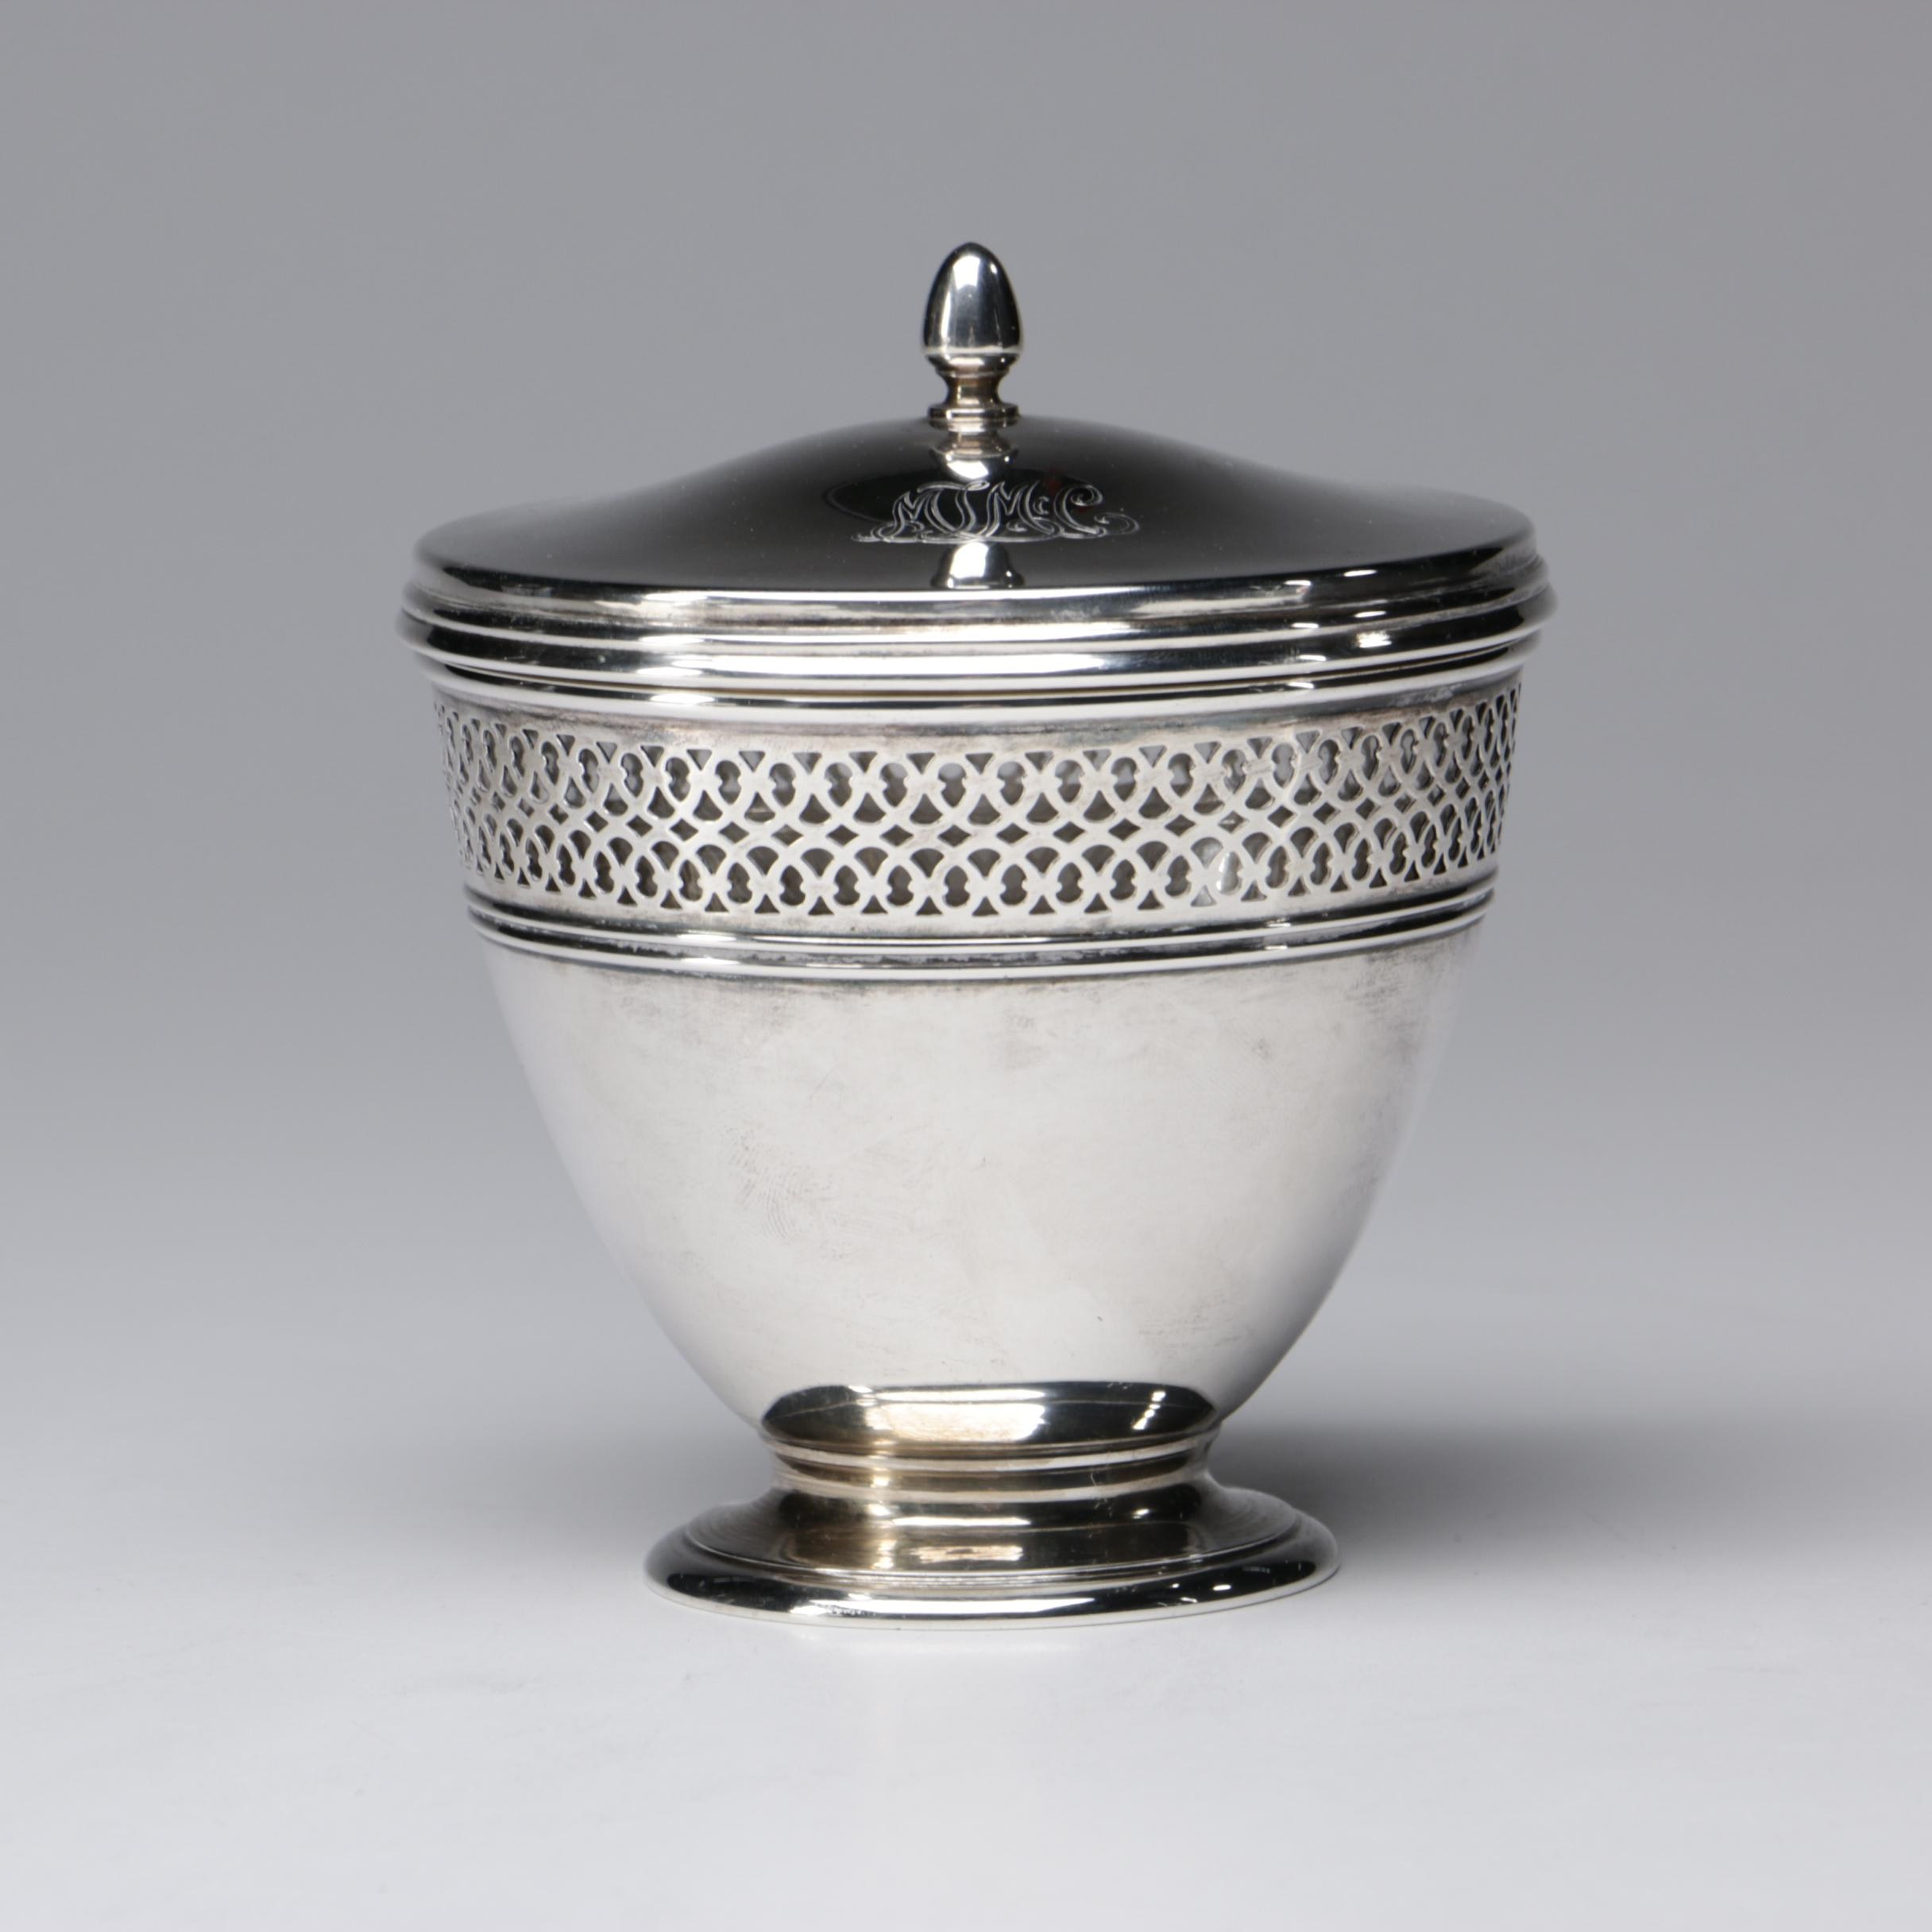 Tiffany & Co. Sterling Silver Lidded Sugar, 1913